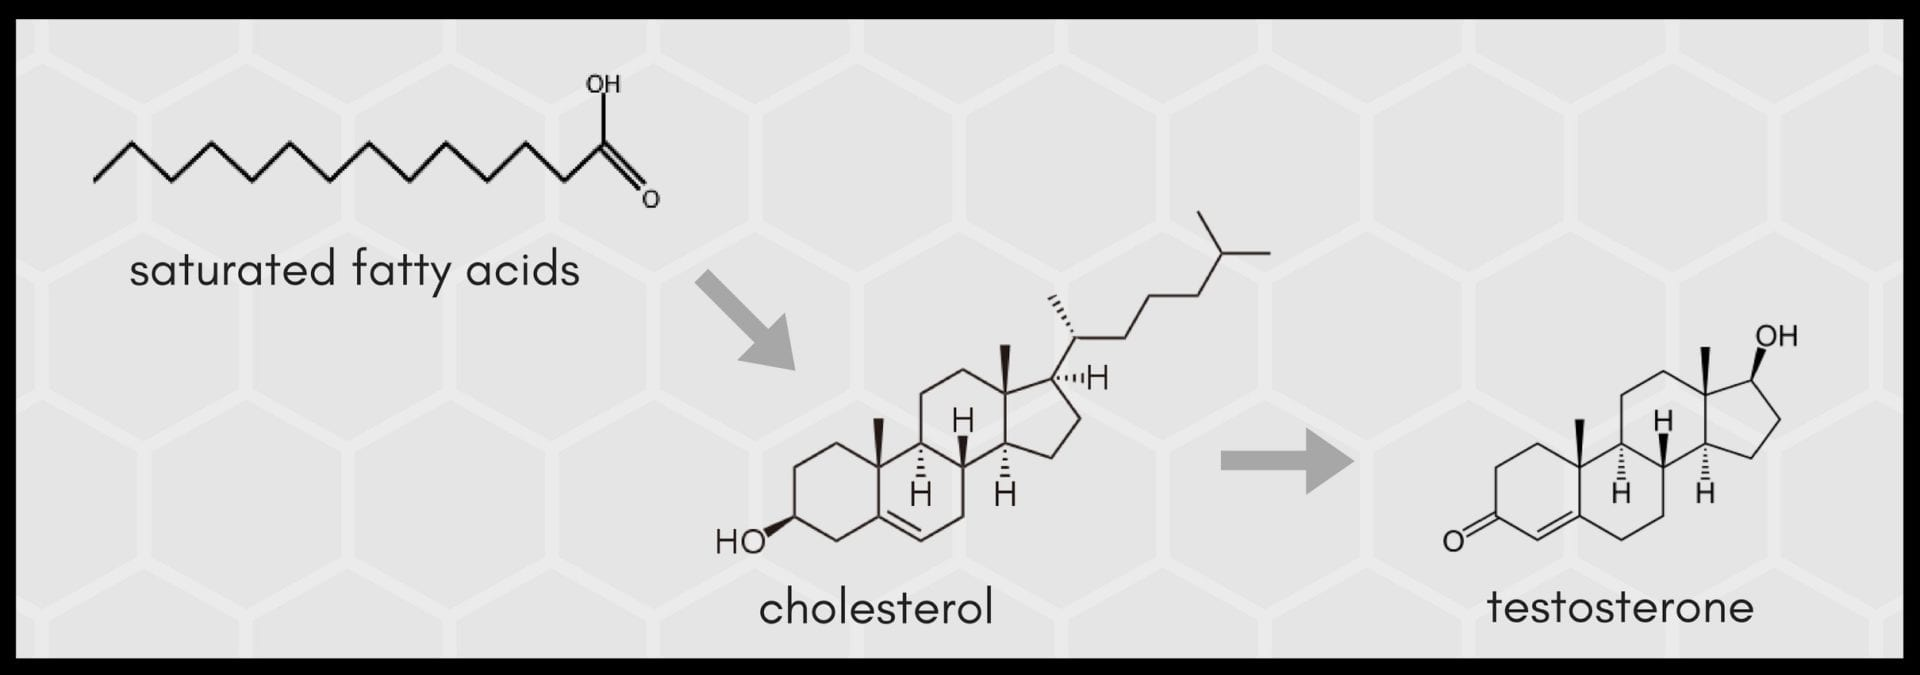 Saturated fat cholesterol testosterone